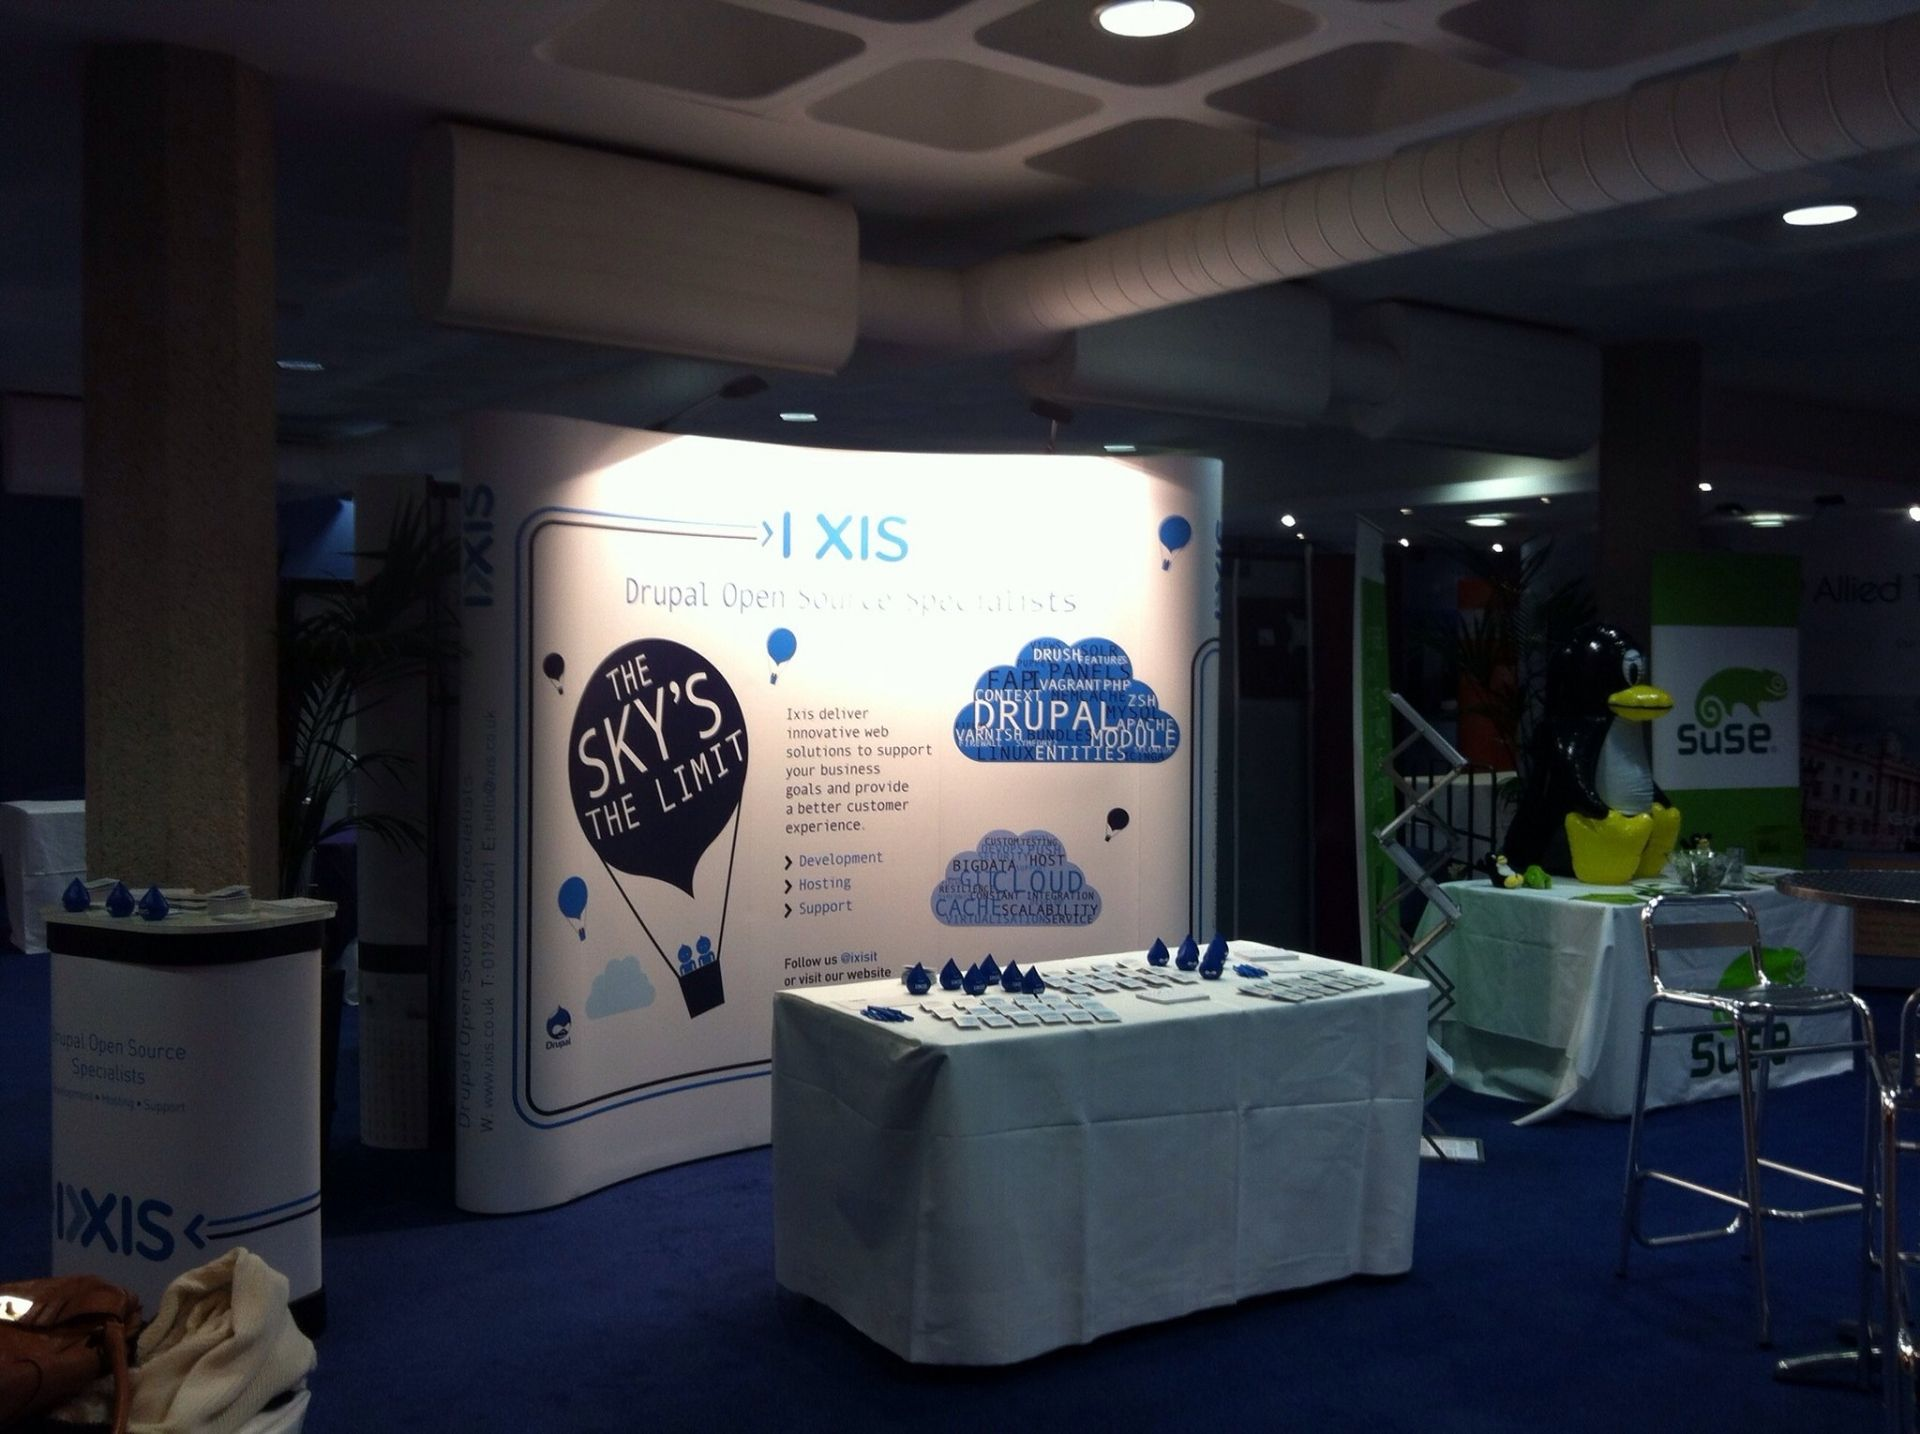 Public Sector conference exhibiting